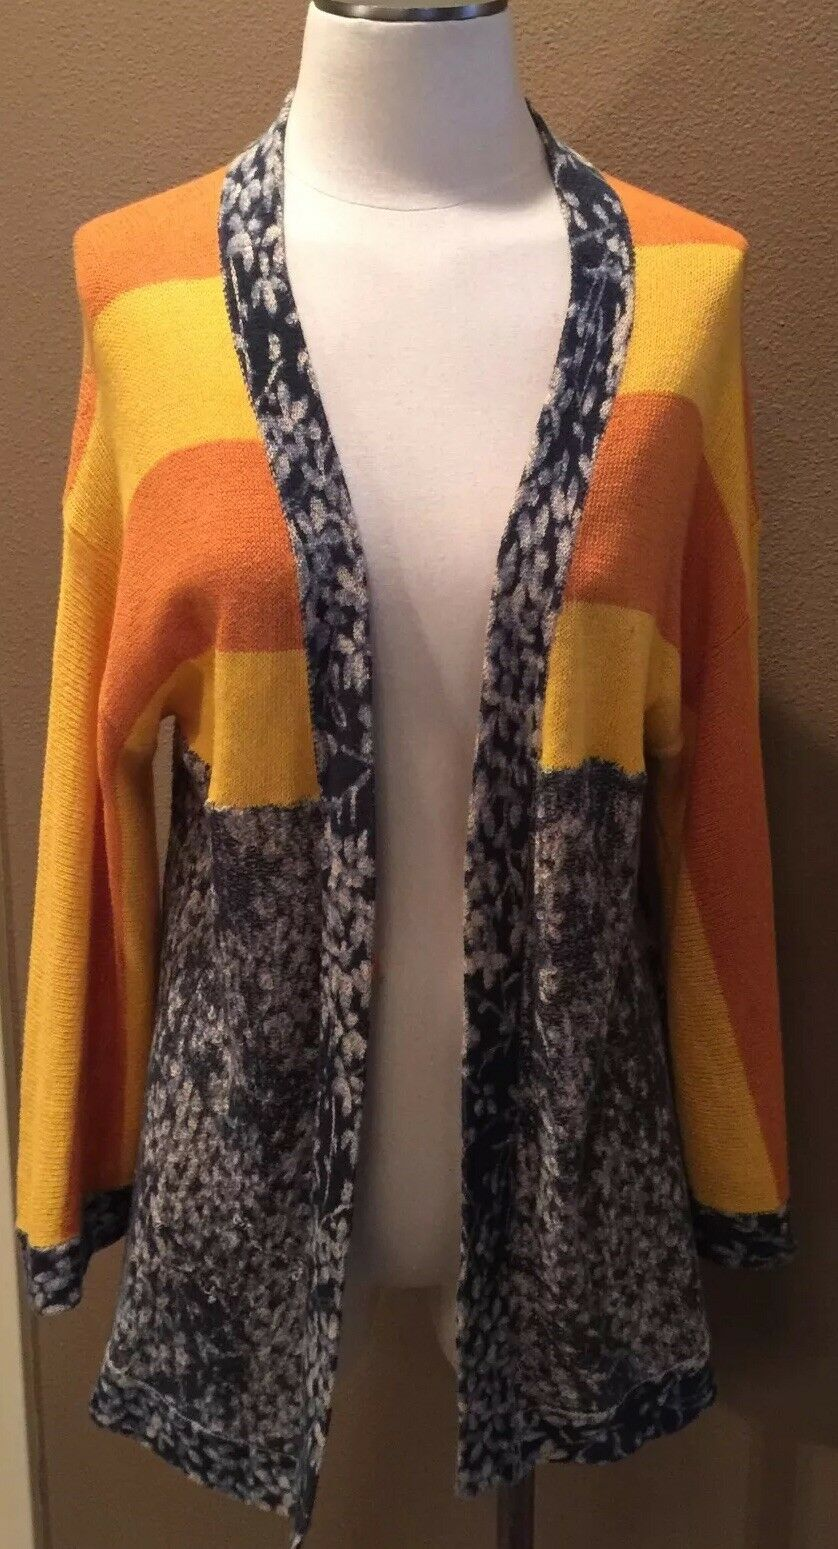 ANTHROPOLOGIE MAPLE S CARDIGAN SWEATER NAVY MUSTARD 3 4 FLARE SLEEVES FABULOUS